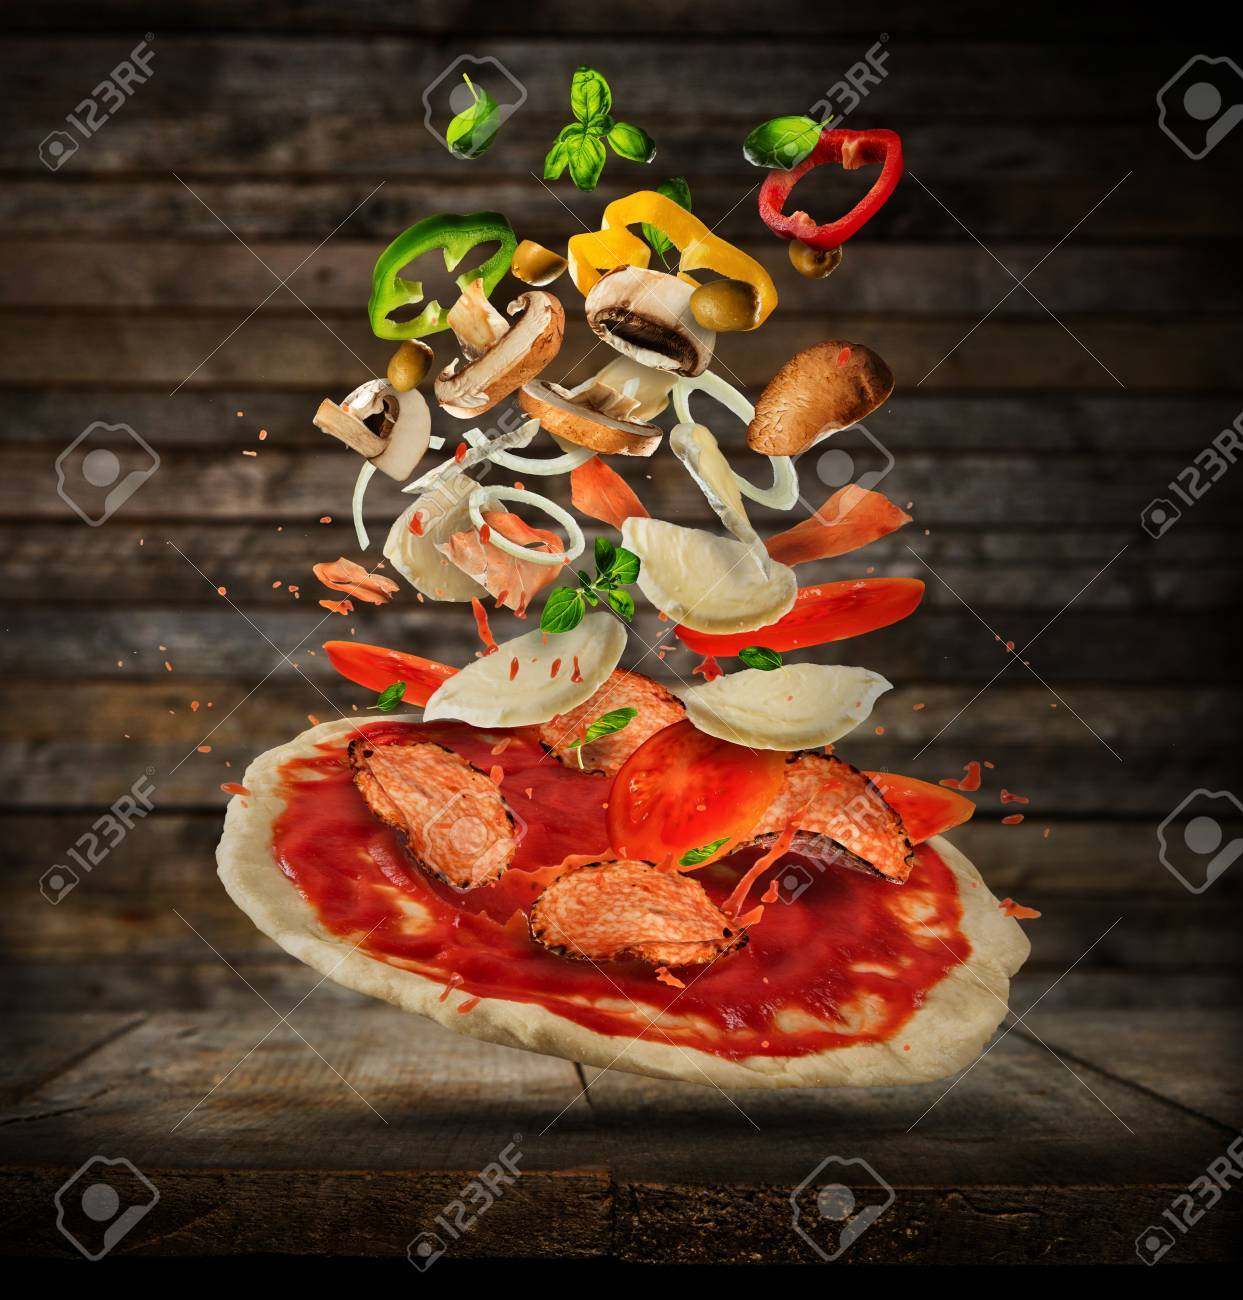 Concept of flying ingredients with pizza dough, placed on wooden planks background. Food preparation, fresh meal ready for cooking - 75205871